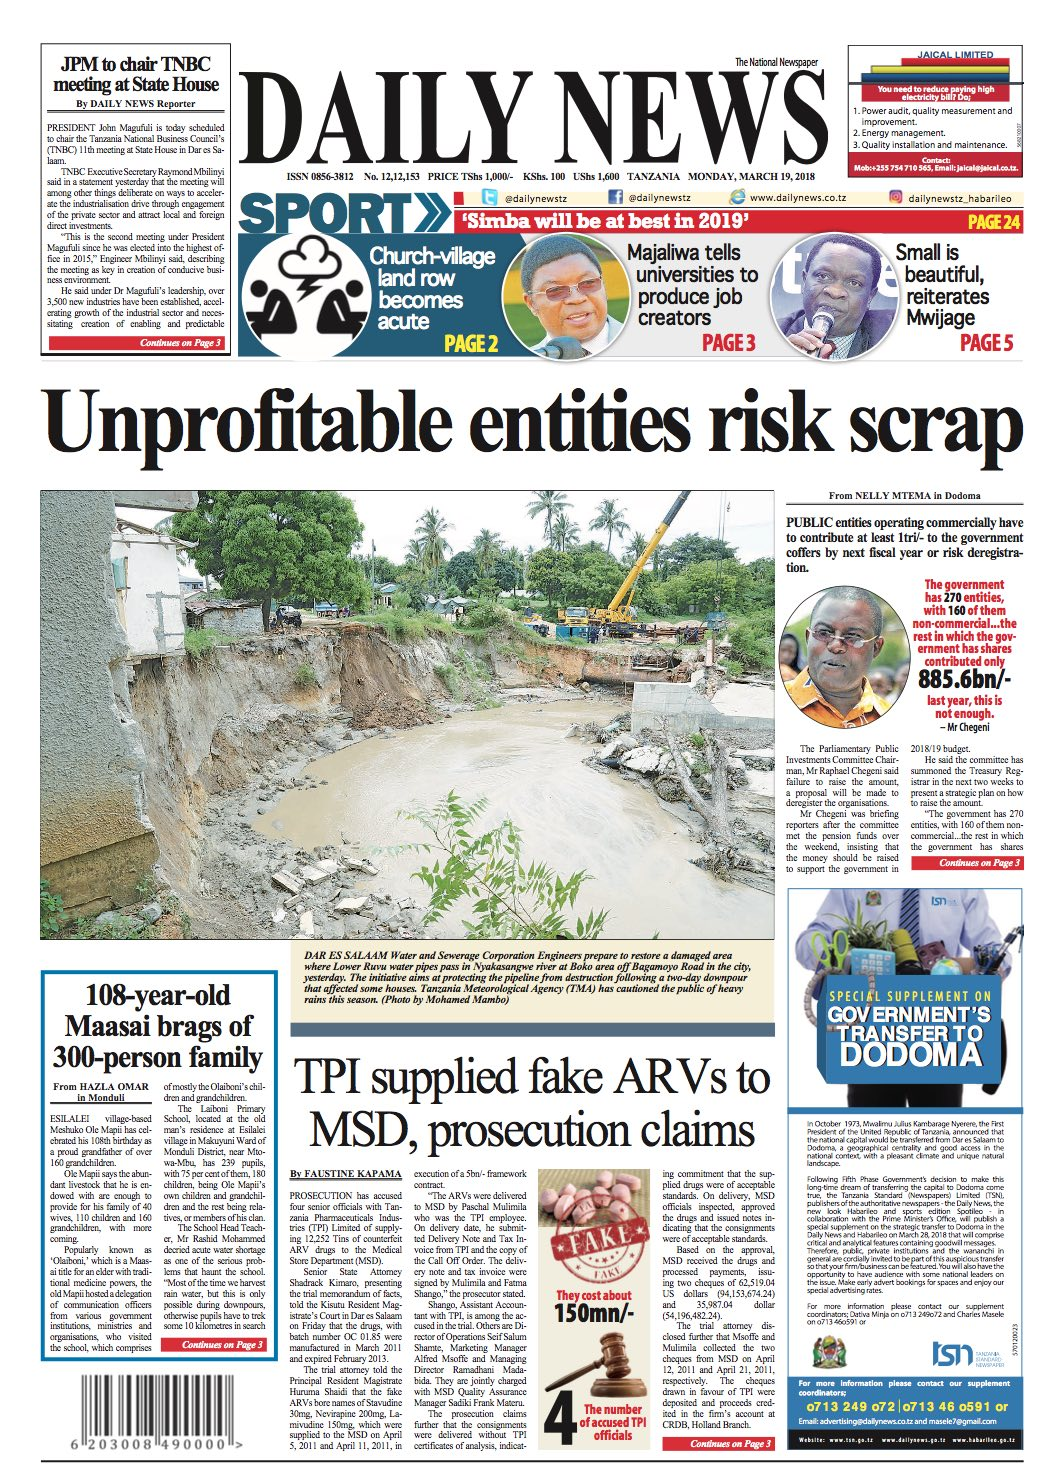 UNPROFITABLE ENTITIES RISK SCRAP